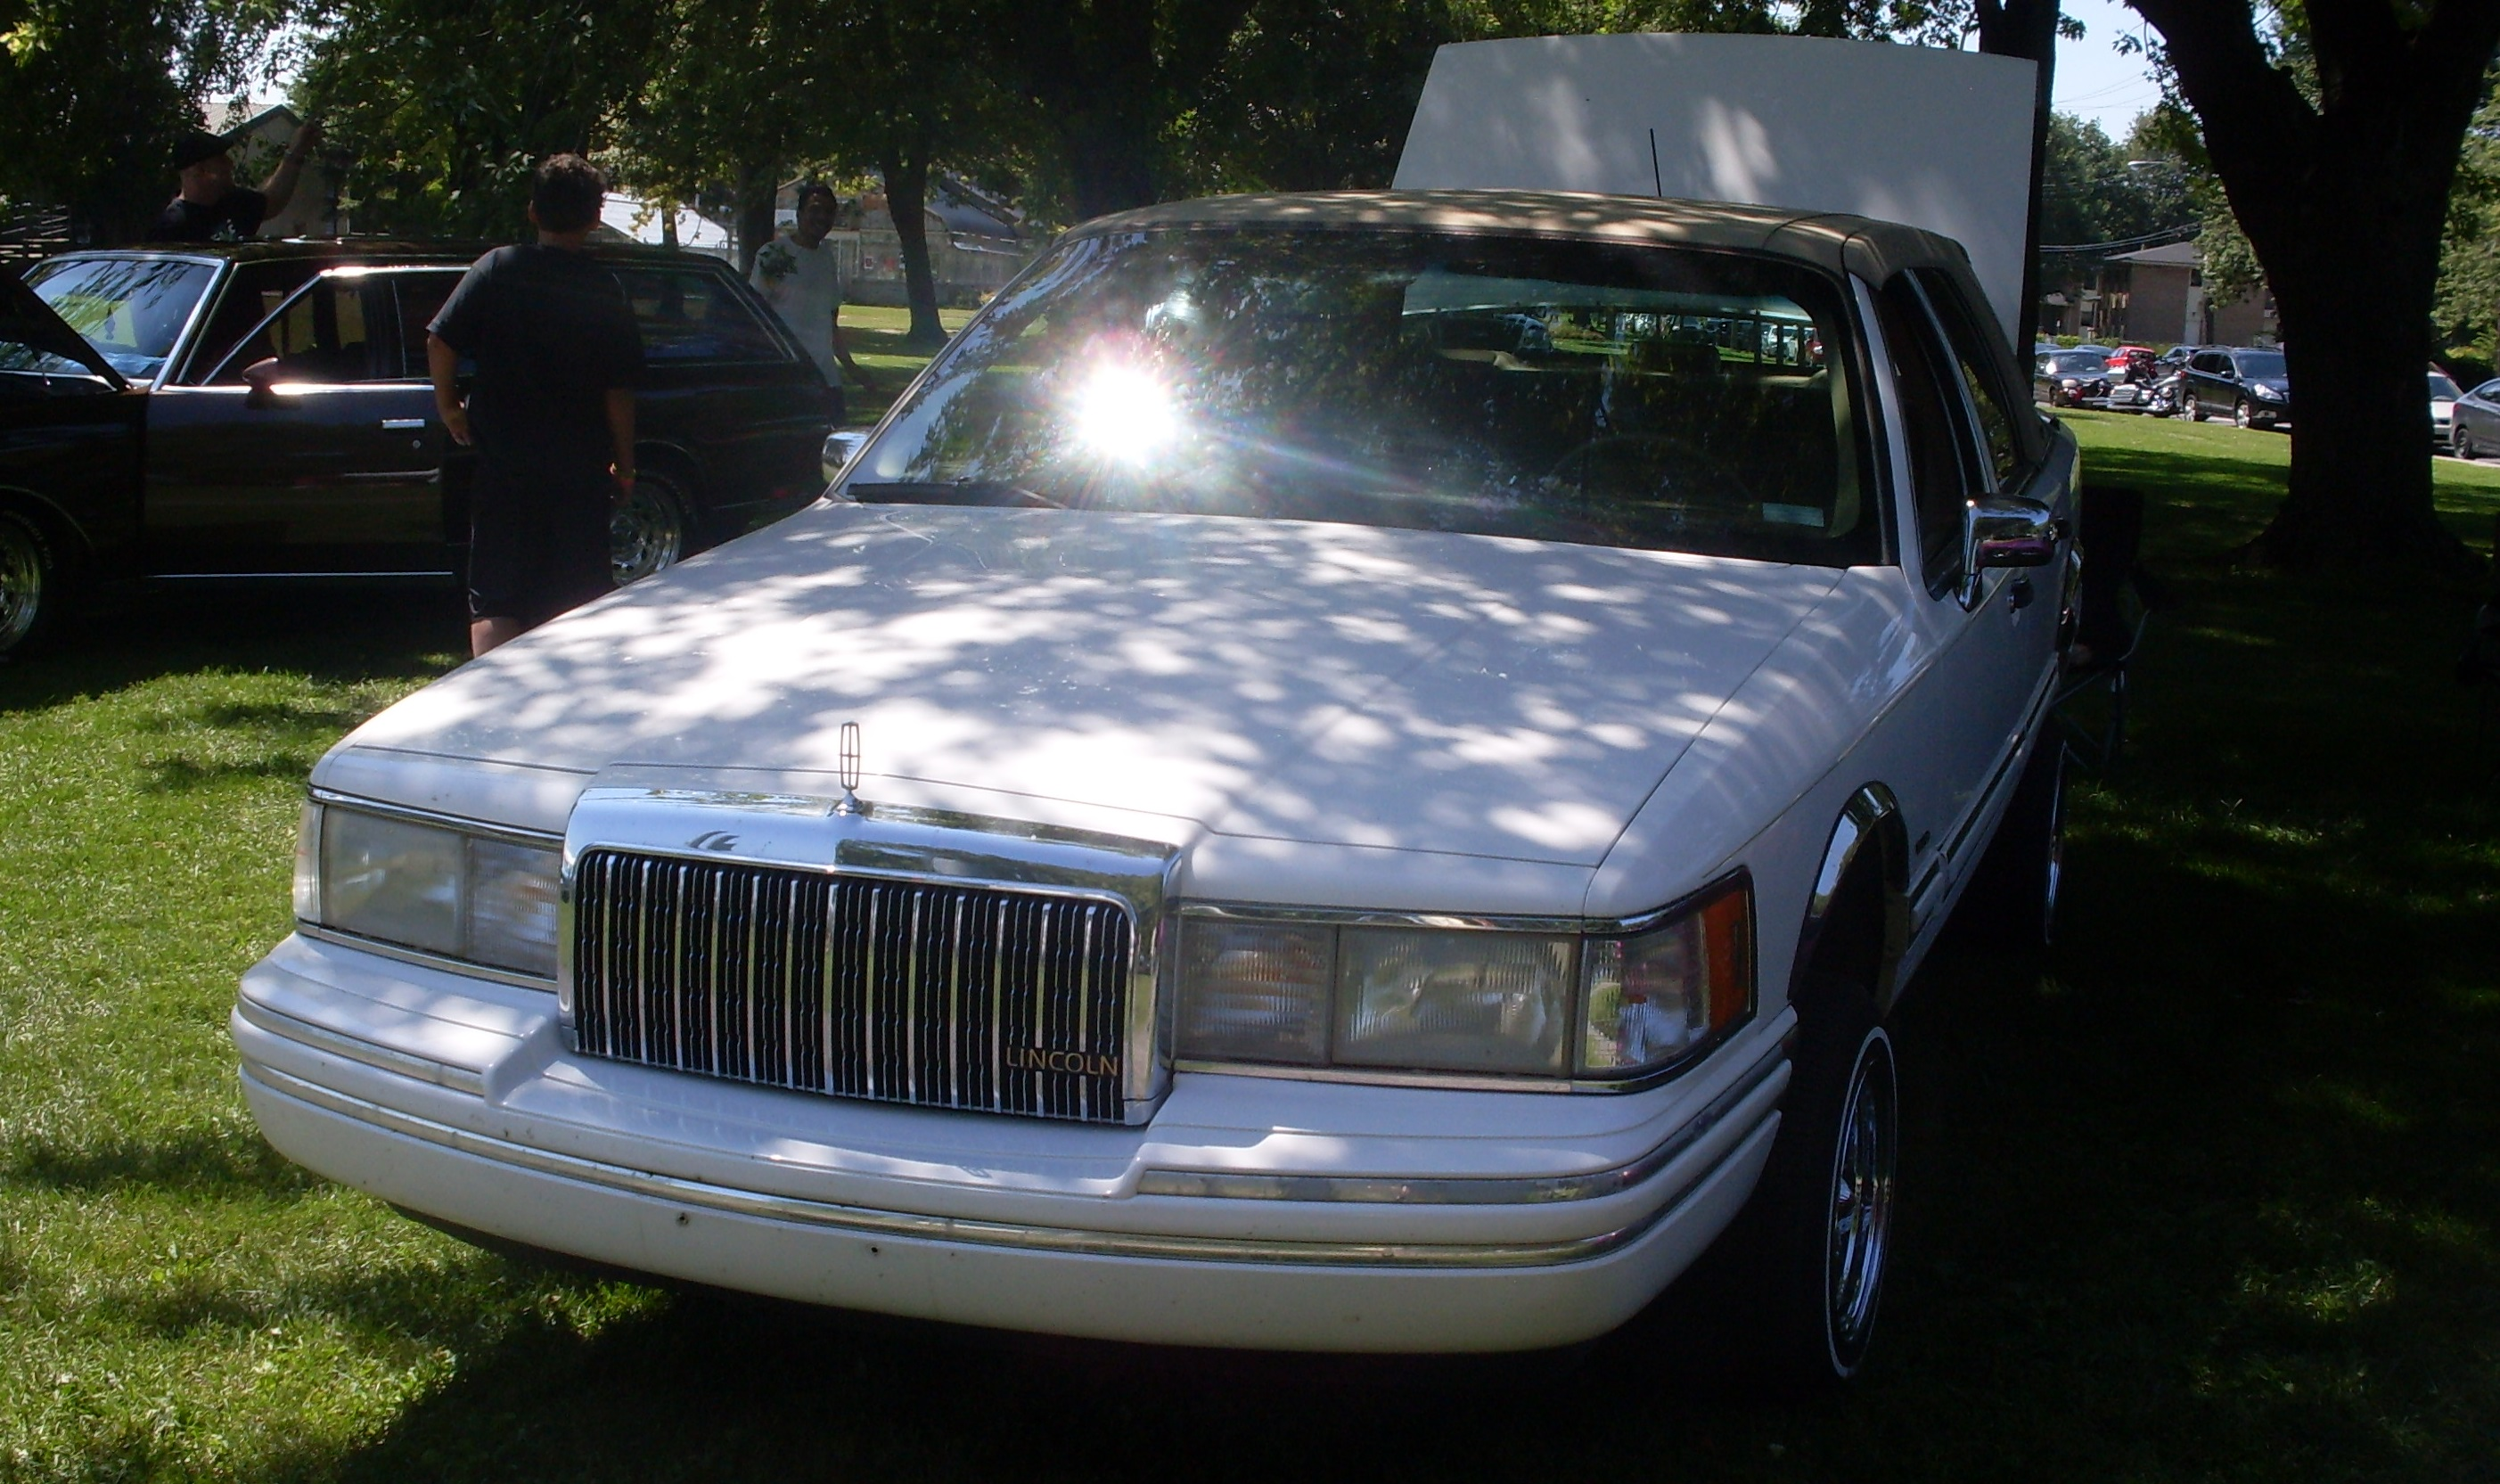 File 93 94 Lincoln Town Car 7eme Picnic Et Bbq 2013 Du Club De